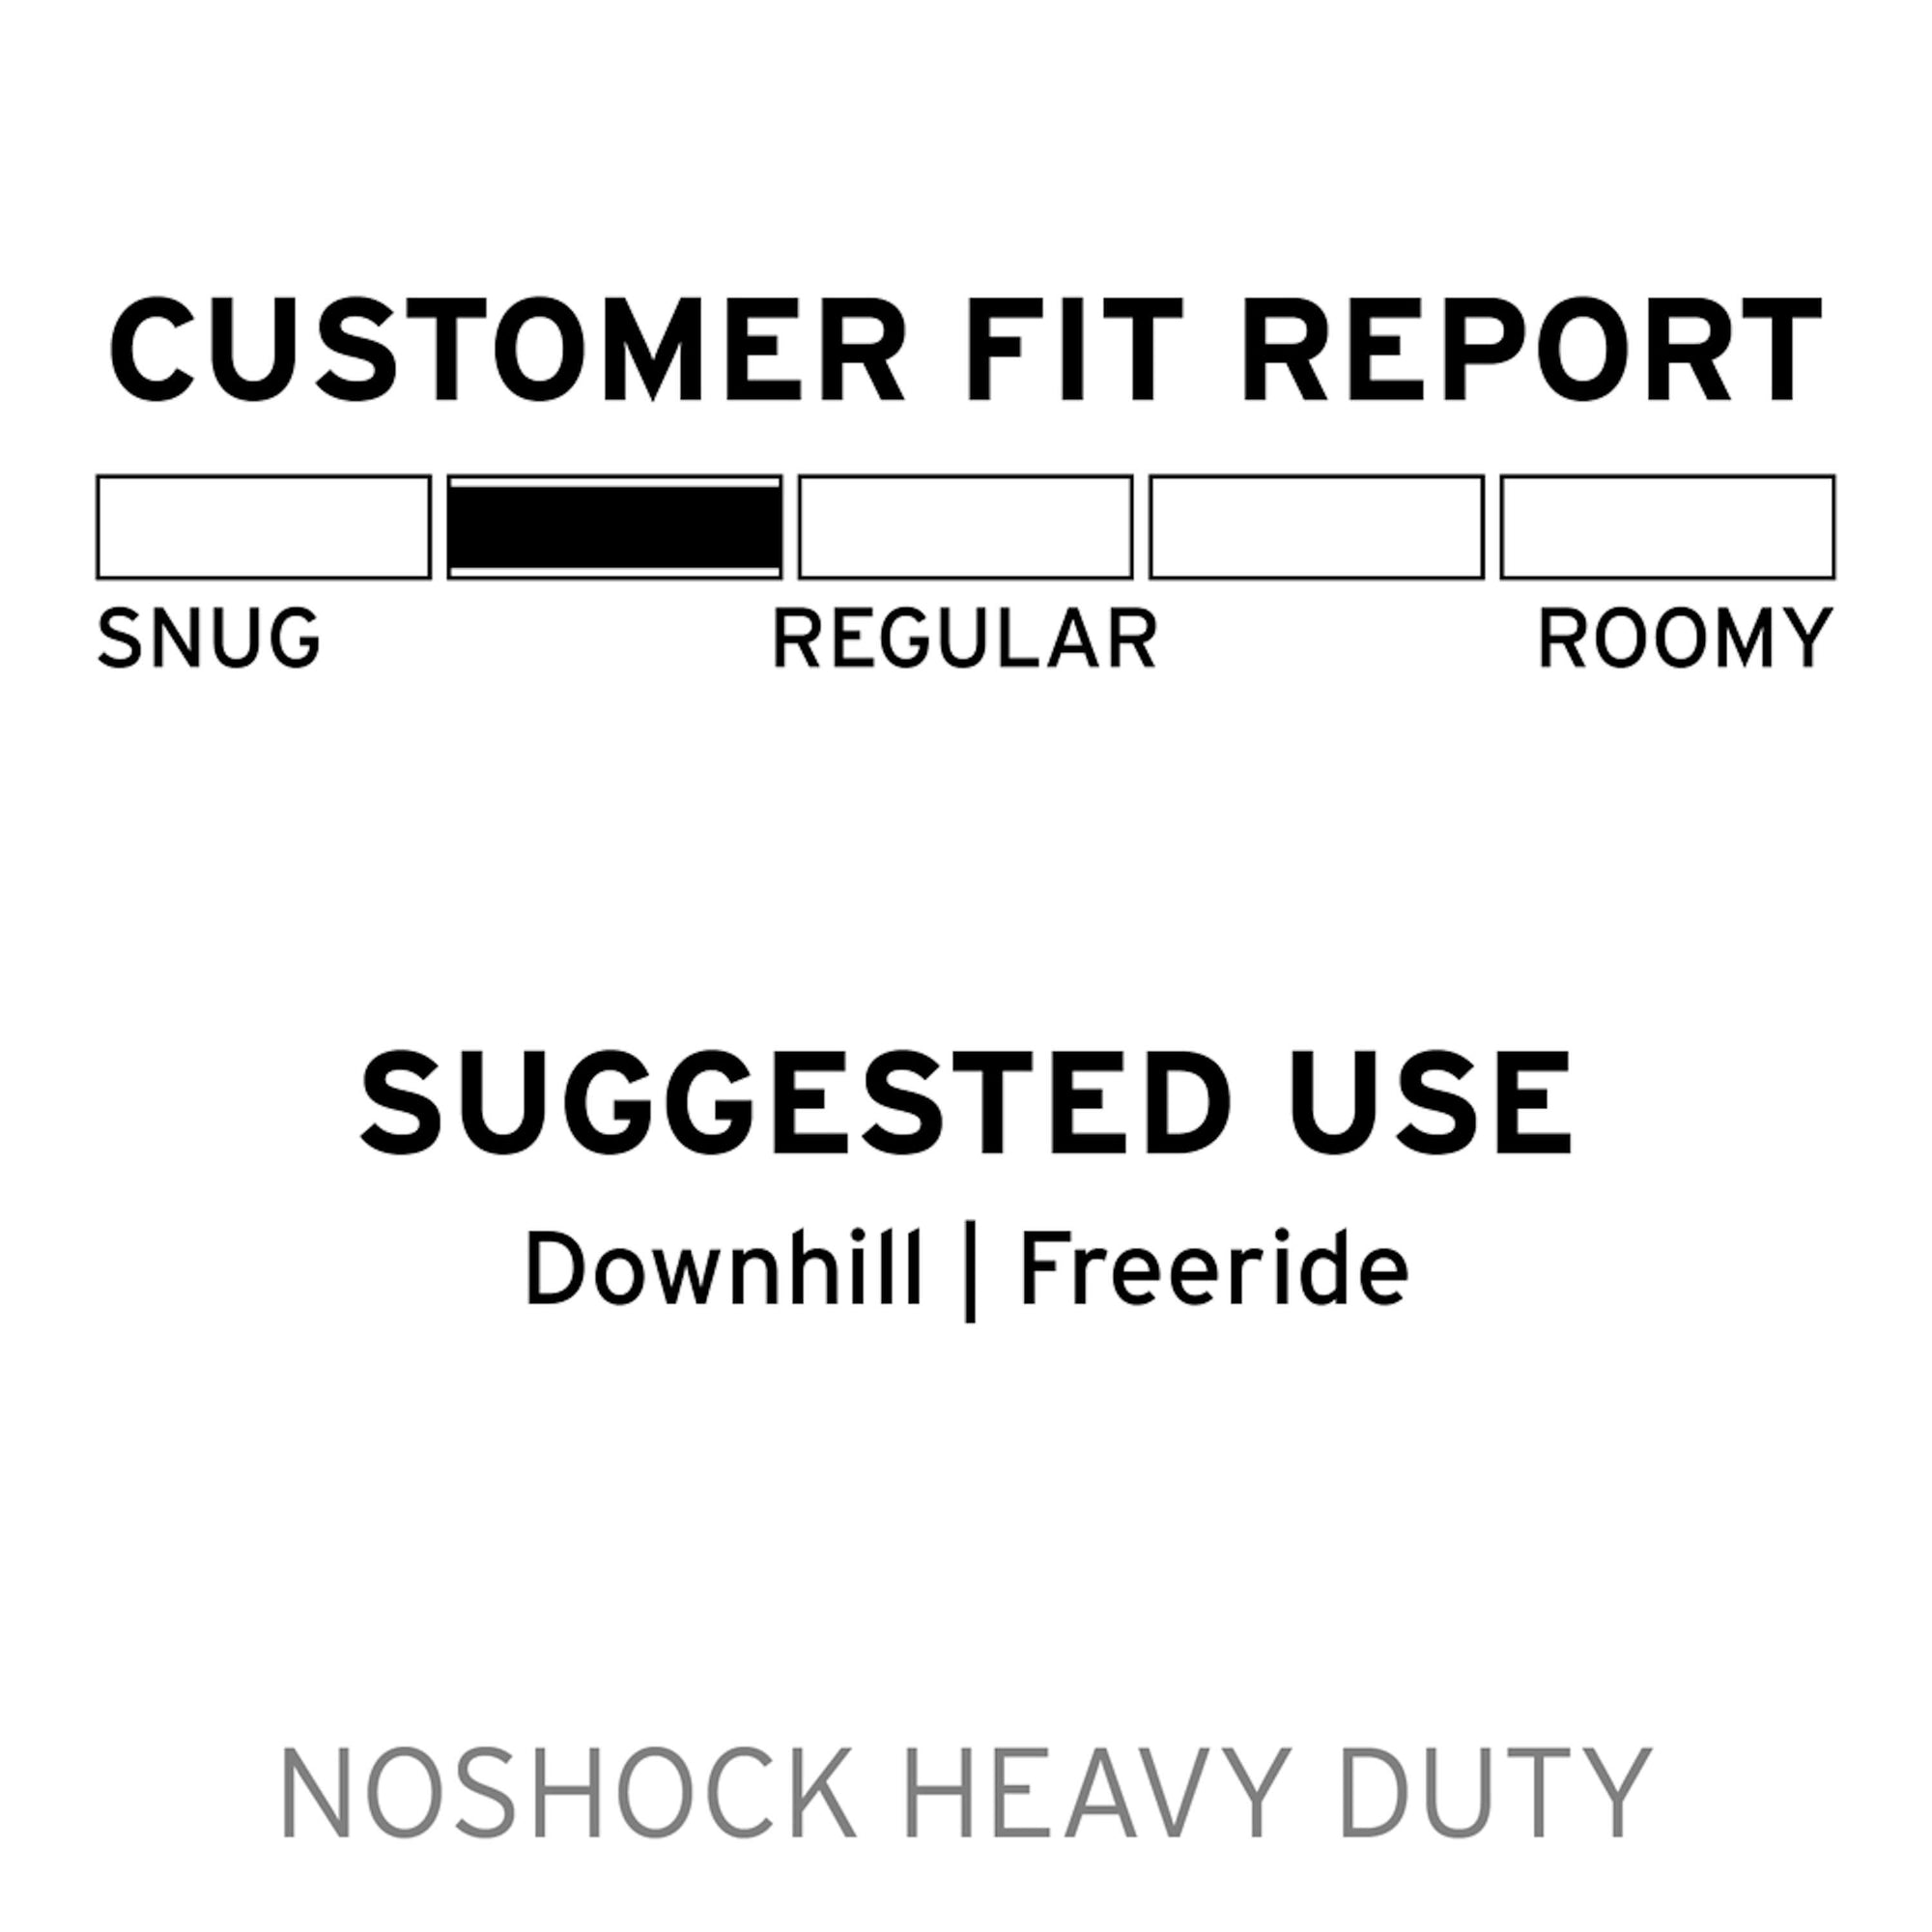 Noshock Elbow Pads Heavy Duty - Knee-Elbow Pads